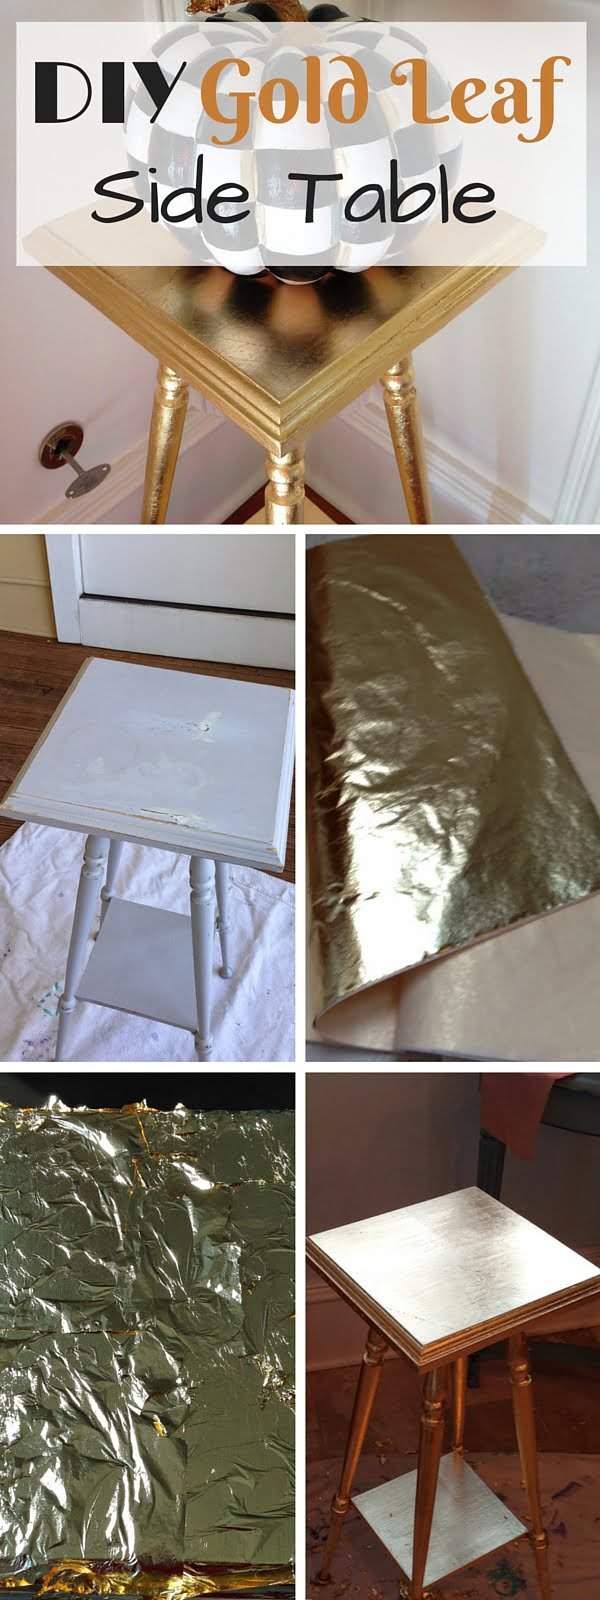 Check out the tutorial: #DIY Gold Leaf Side Table #crafts #homedecor